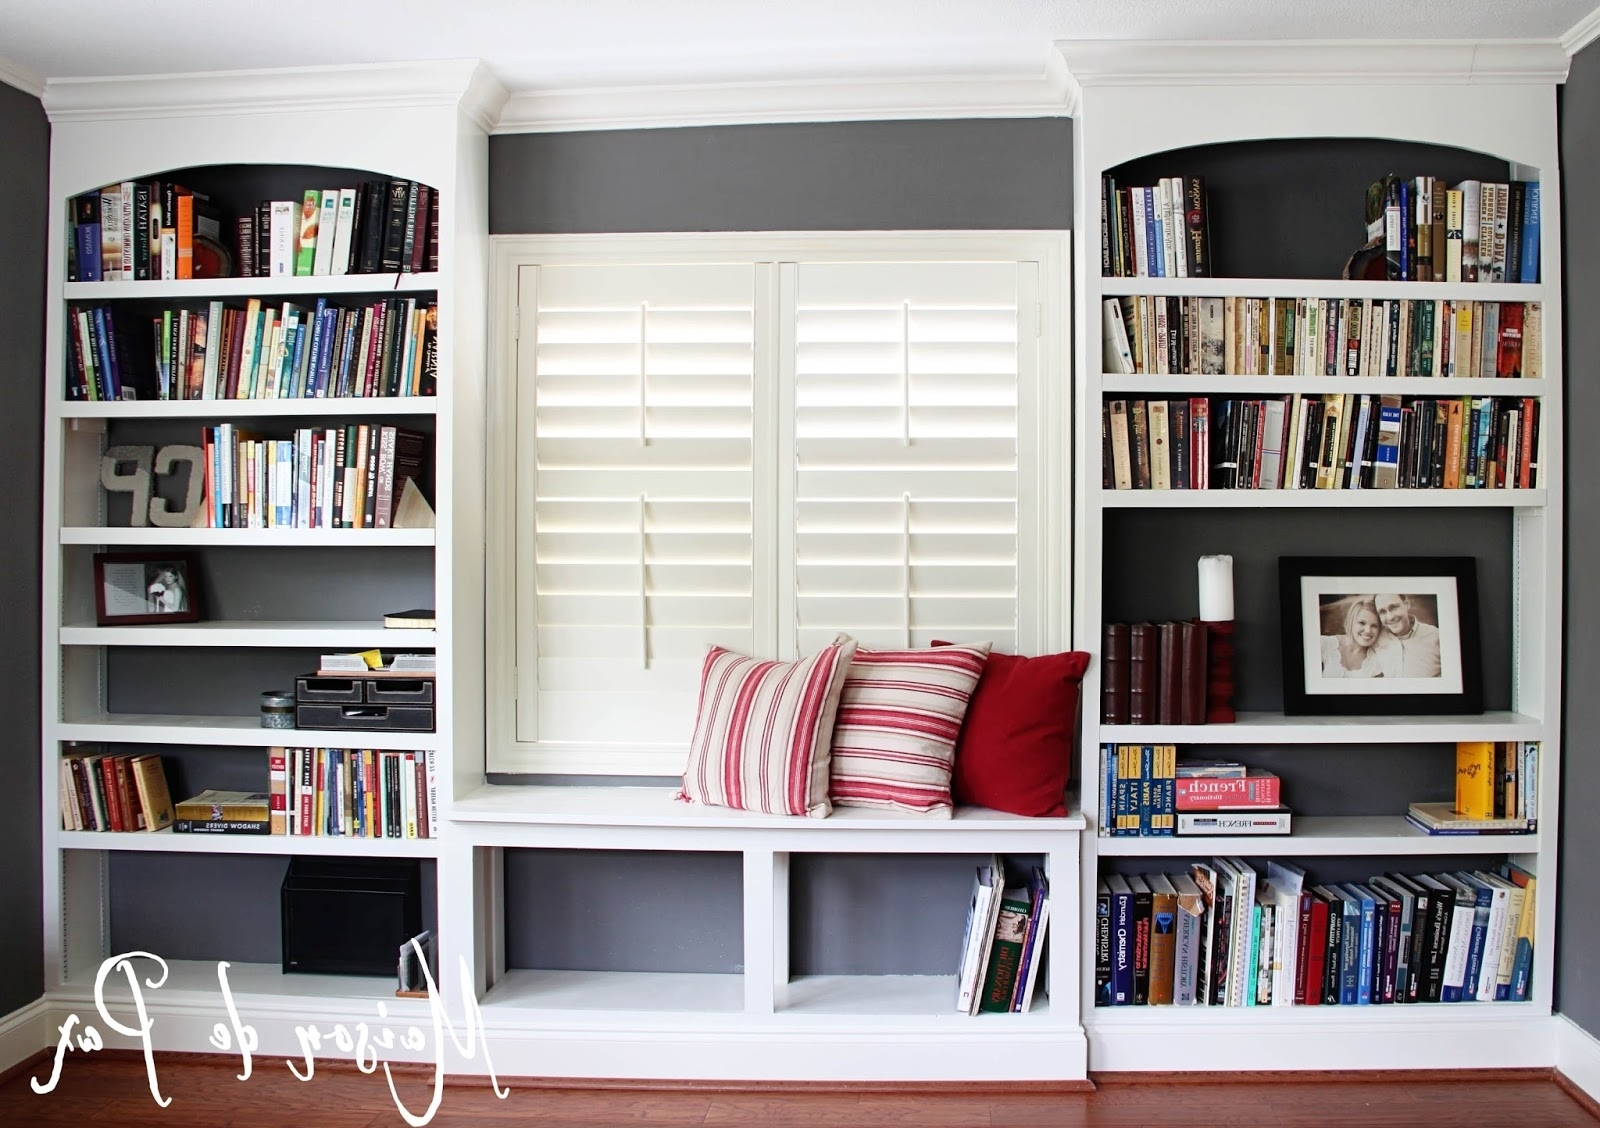 Diy Built In Bookcases Throughout Current Diy Built In Bookshelves – Maison De Pax (View 4 of 15)